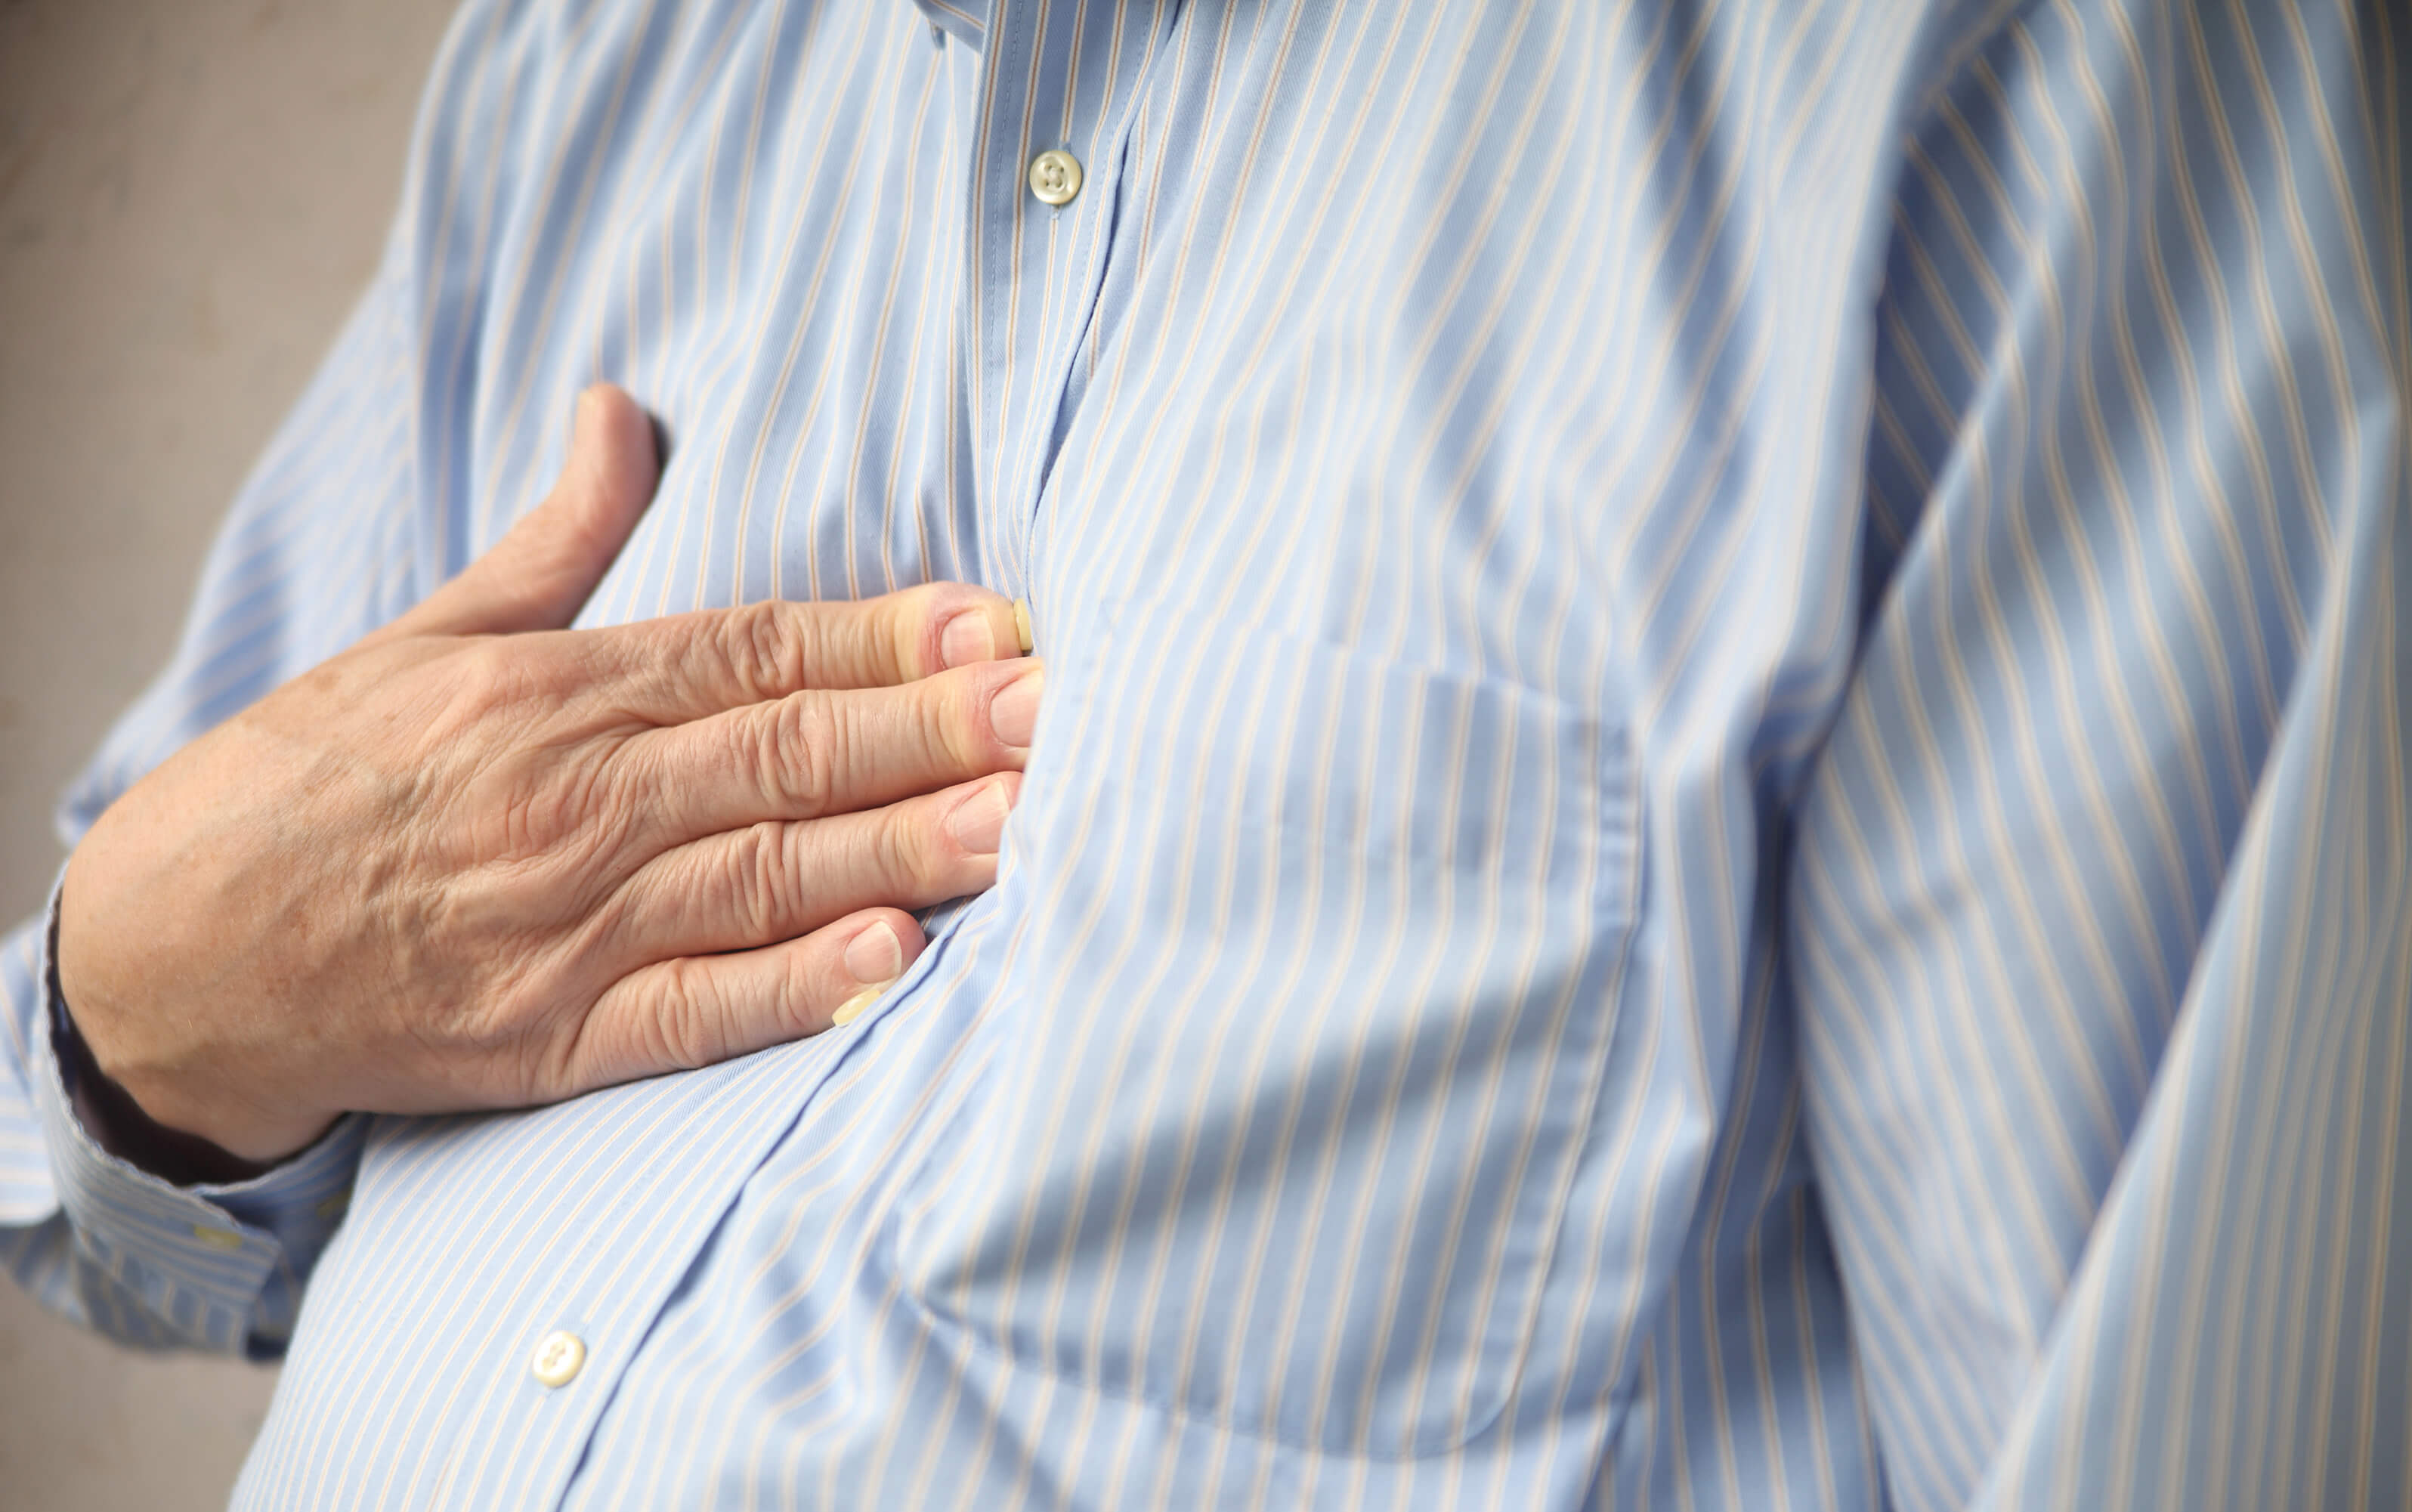 Acid Reflux and Your Gut Health